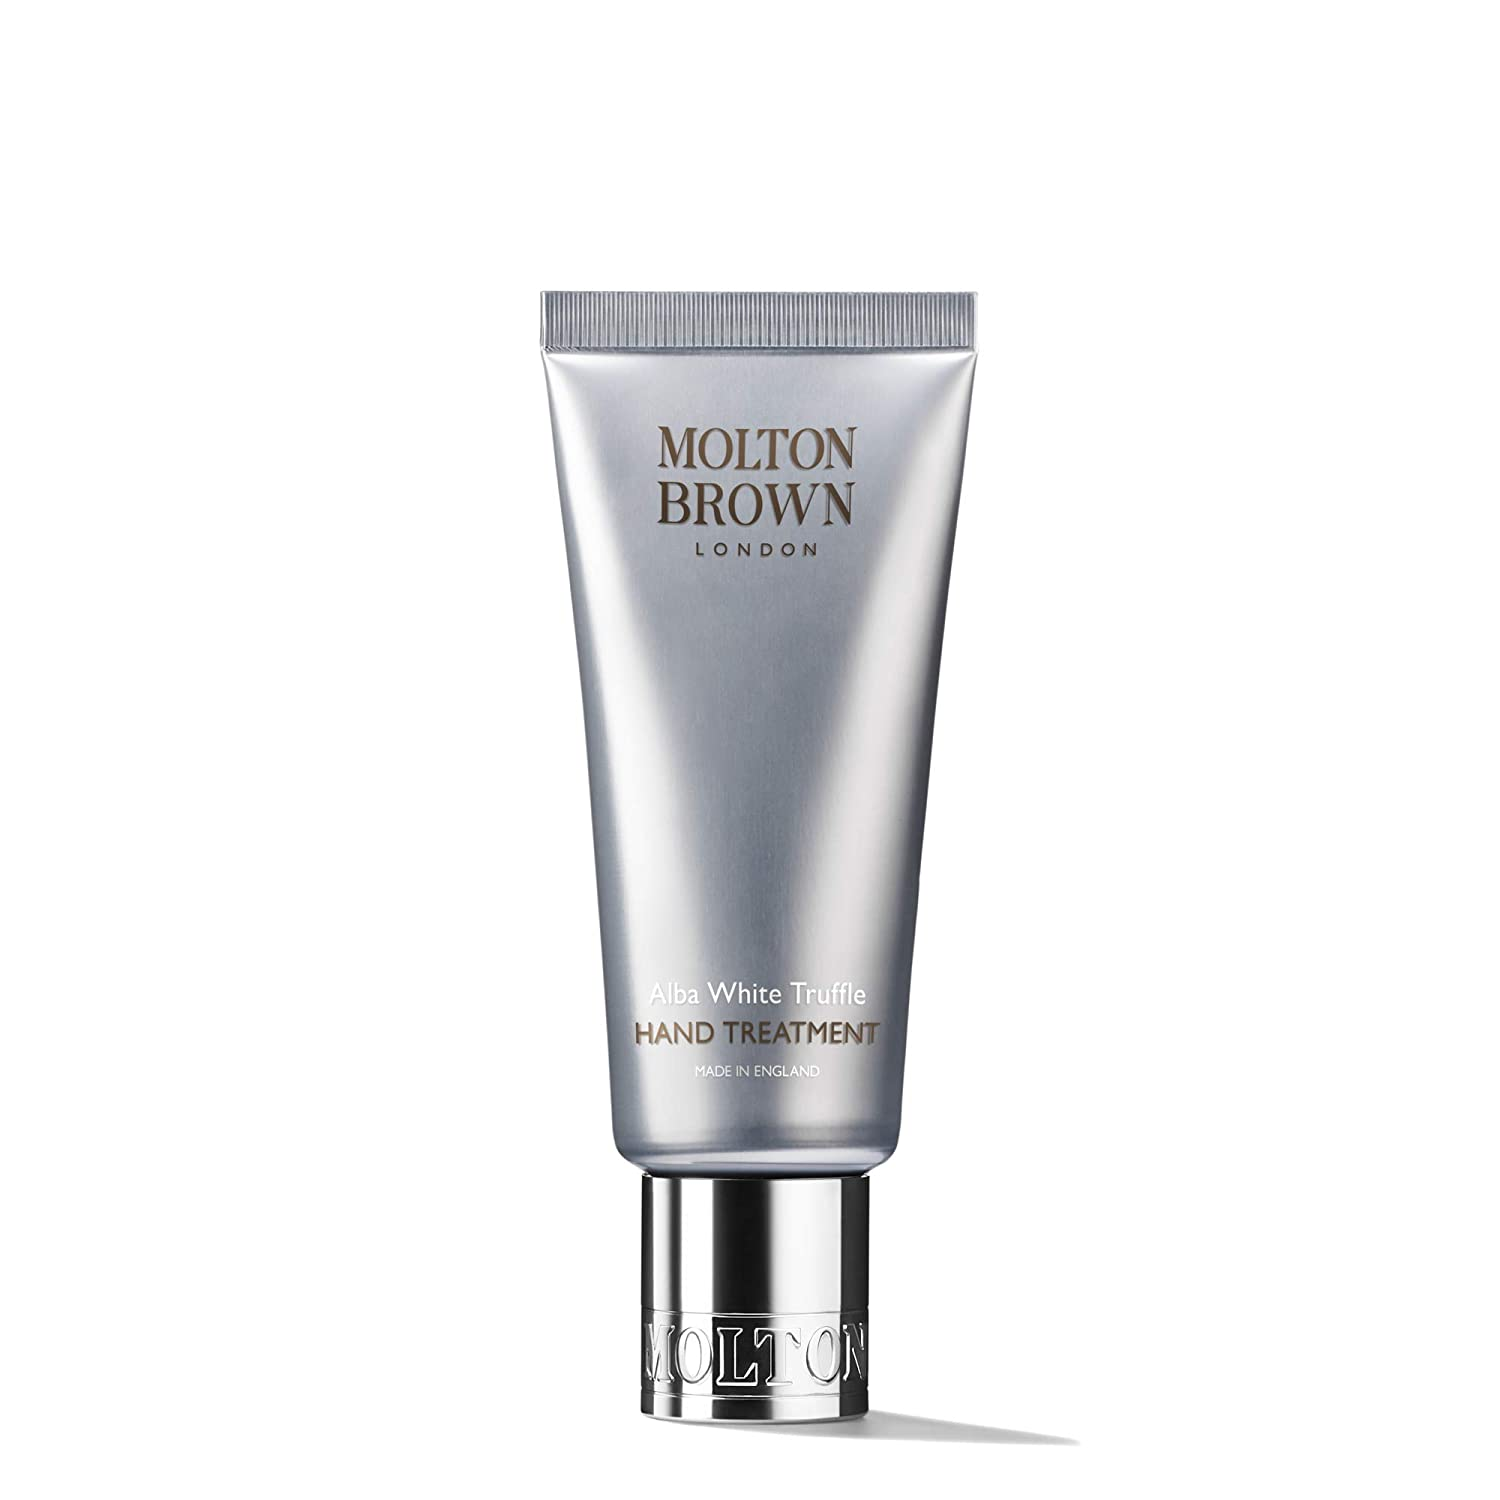 MOLTON BROWN Alba White Truffle Hand Treatment 40 ml KTD089